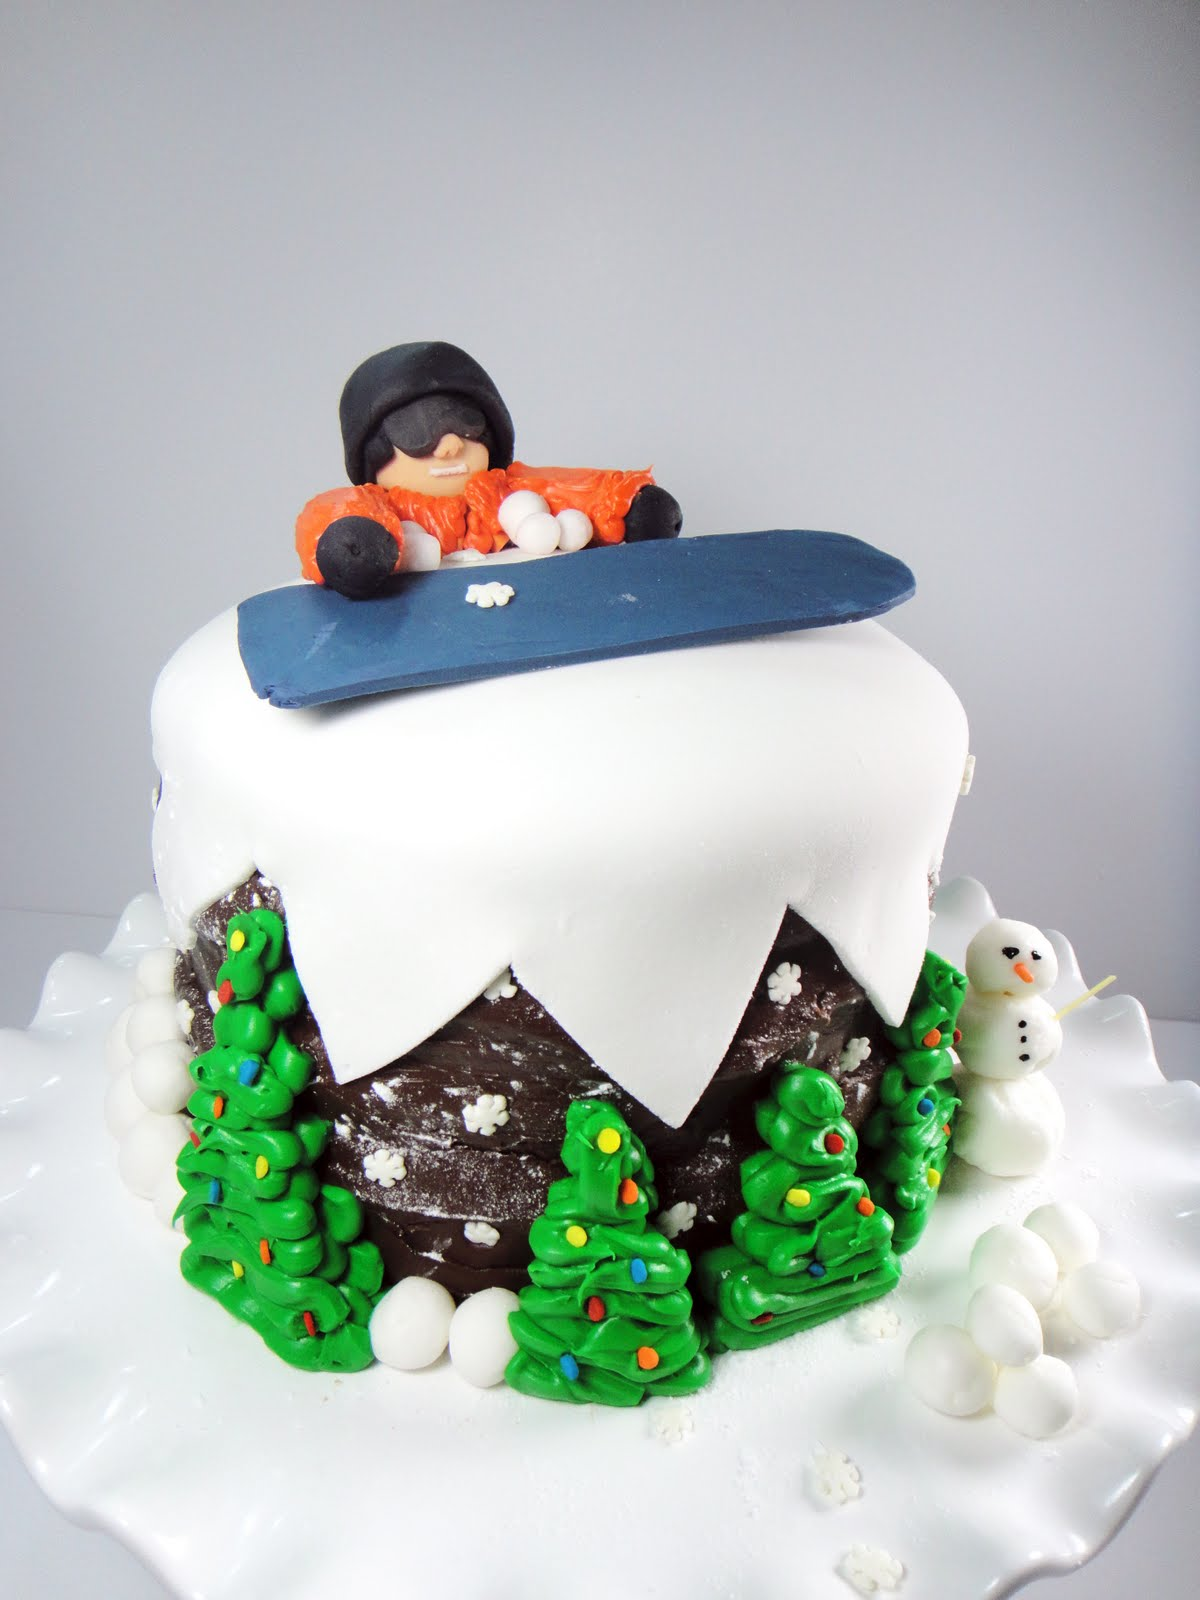 Cake Decorating Ideas Skiing Dmost for